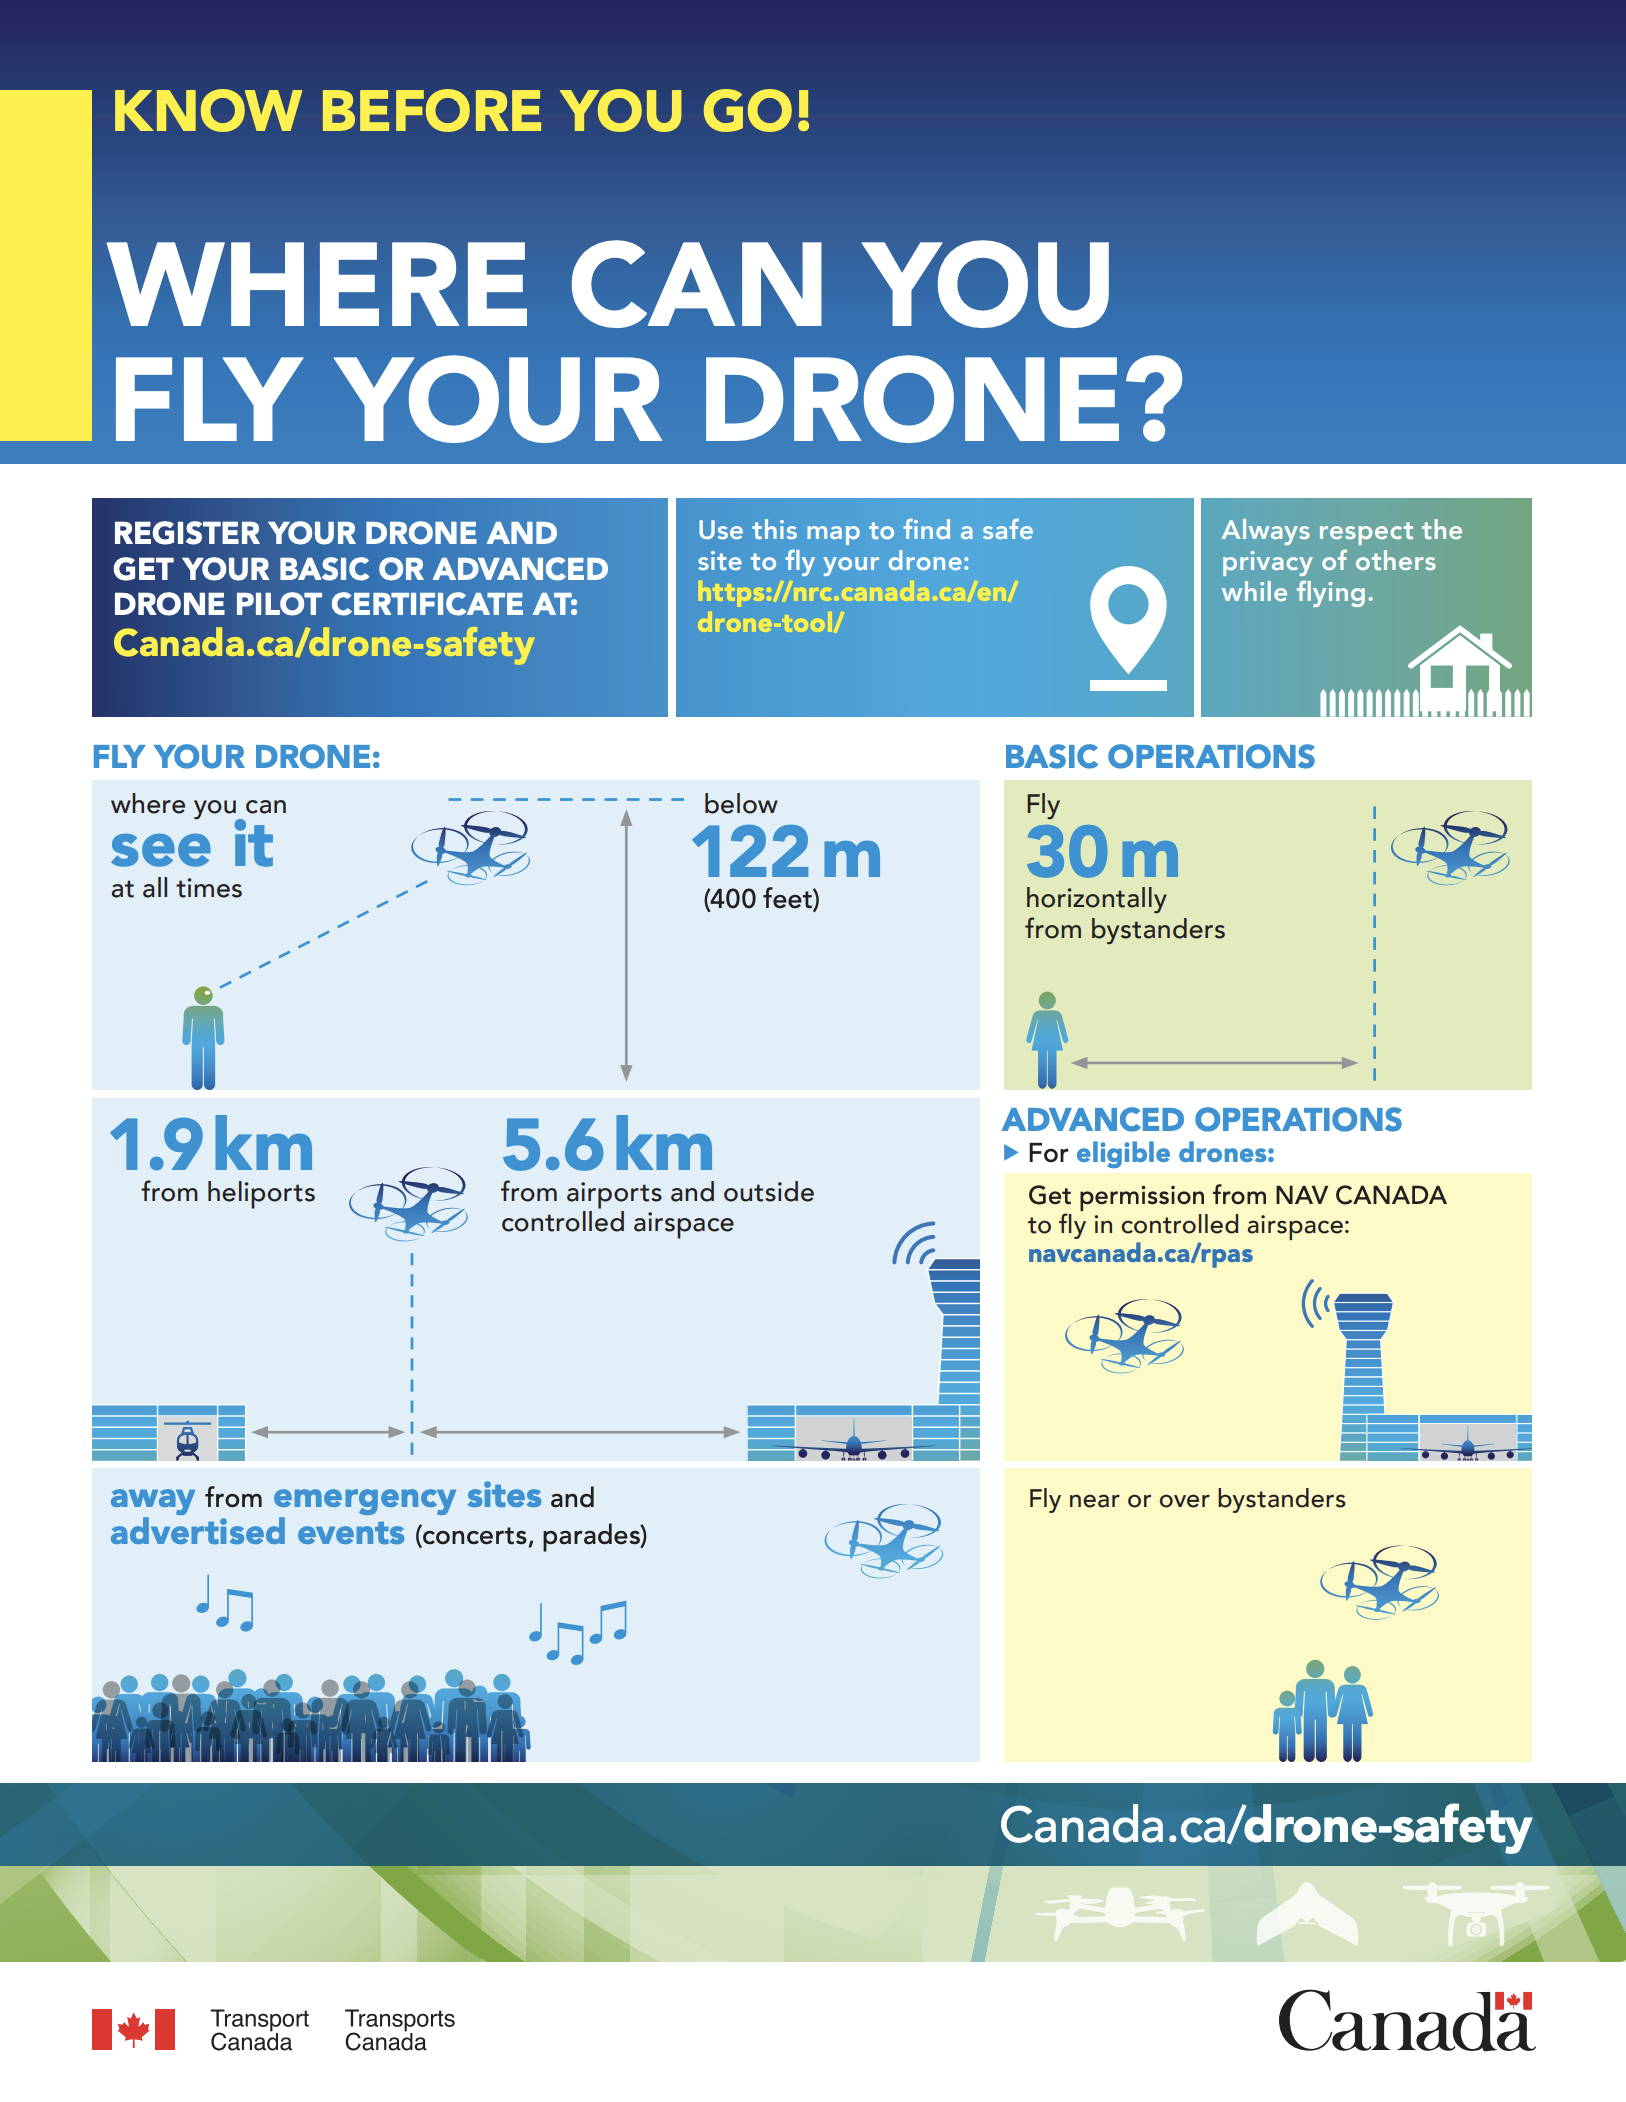 Transport Canada Drone Regulations Dr Drone where you can you fly your drone